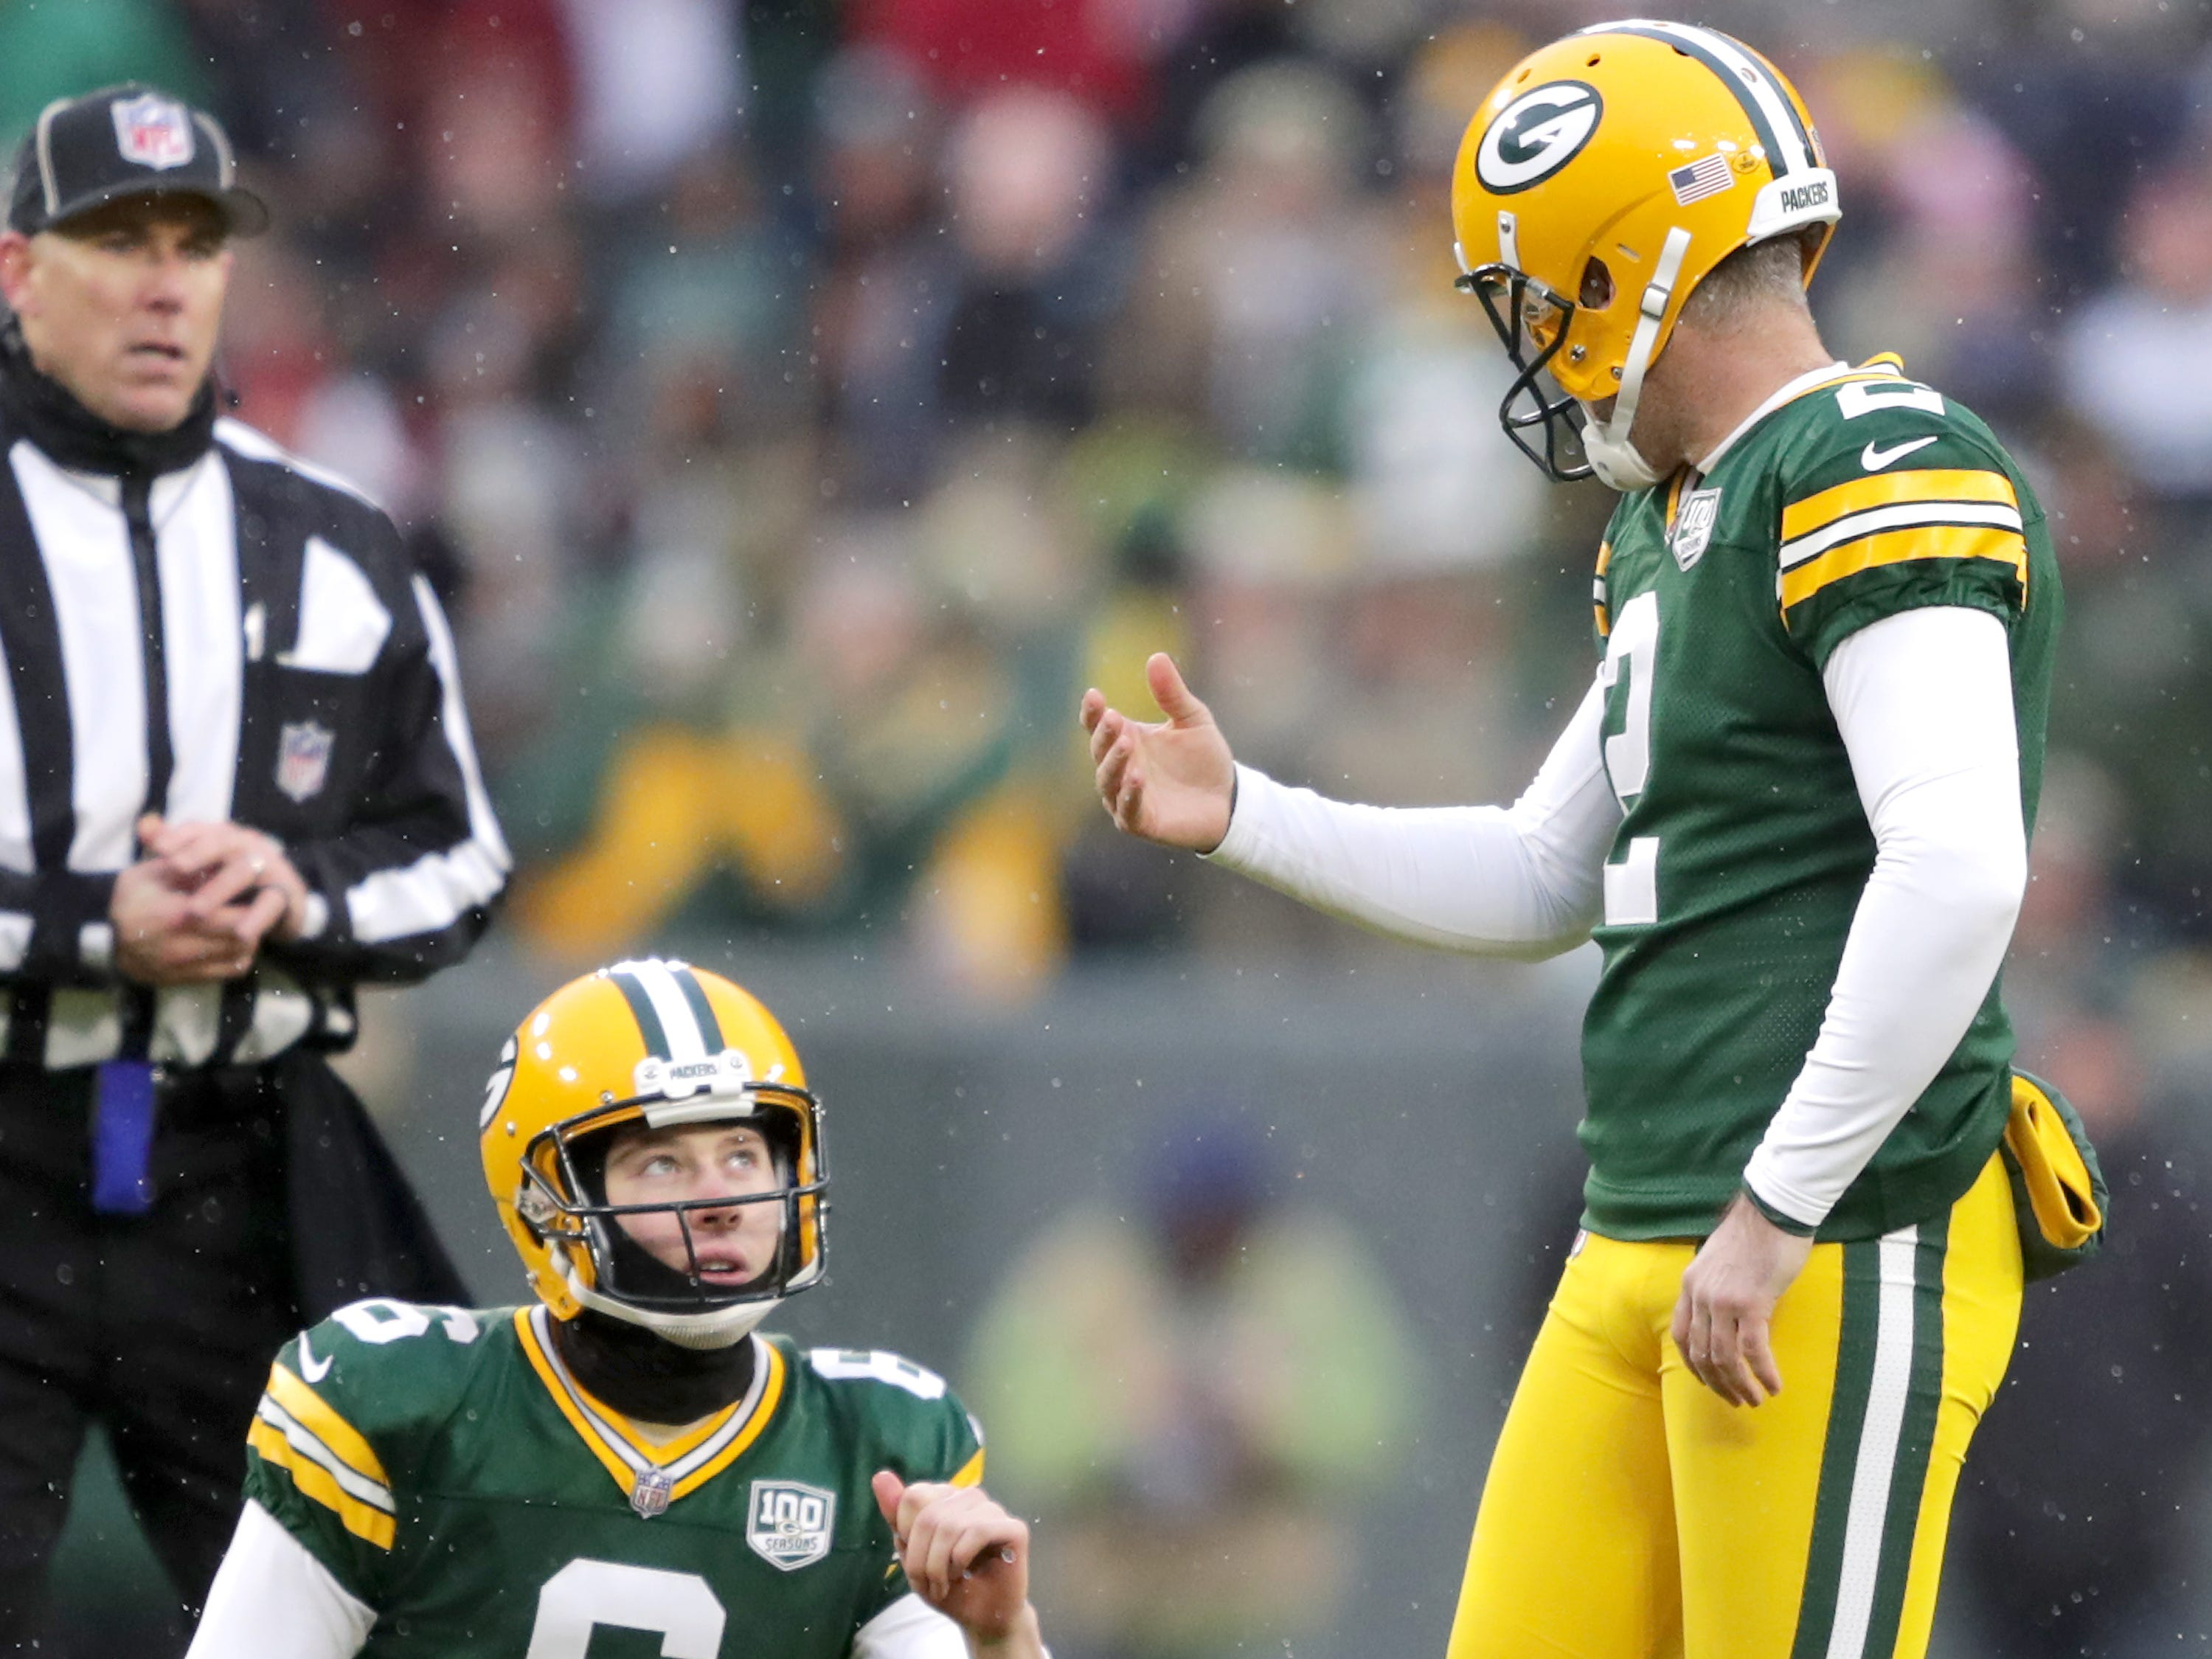 Green Bay Packers kicker Mason Crosby and punter/holder J.K. Scott react following a missed field goal ending the game against the Arizona Cardinals during on Sunday, December 2, 2018, at Lambeau Field in Green Bay, Wis. Arizona defeated Green Bay 20 to 17. Wm. Glasheen/USA TODAY NETWORK-Wisconsin.